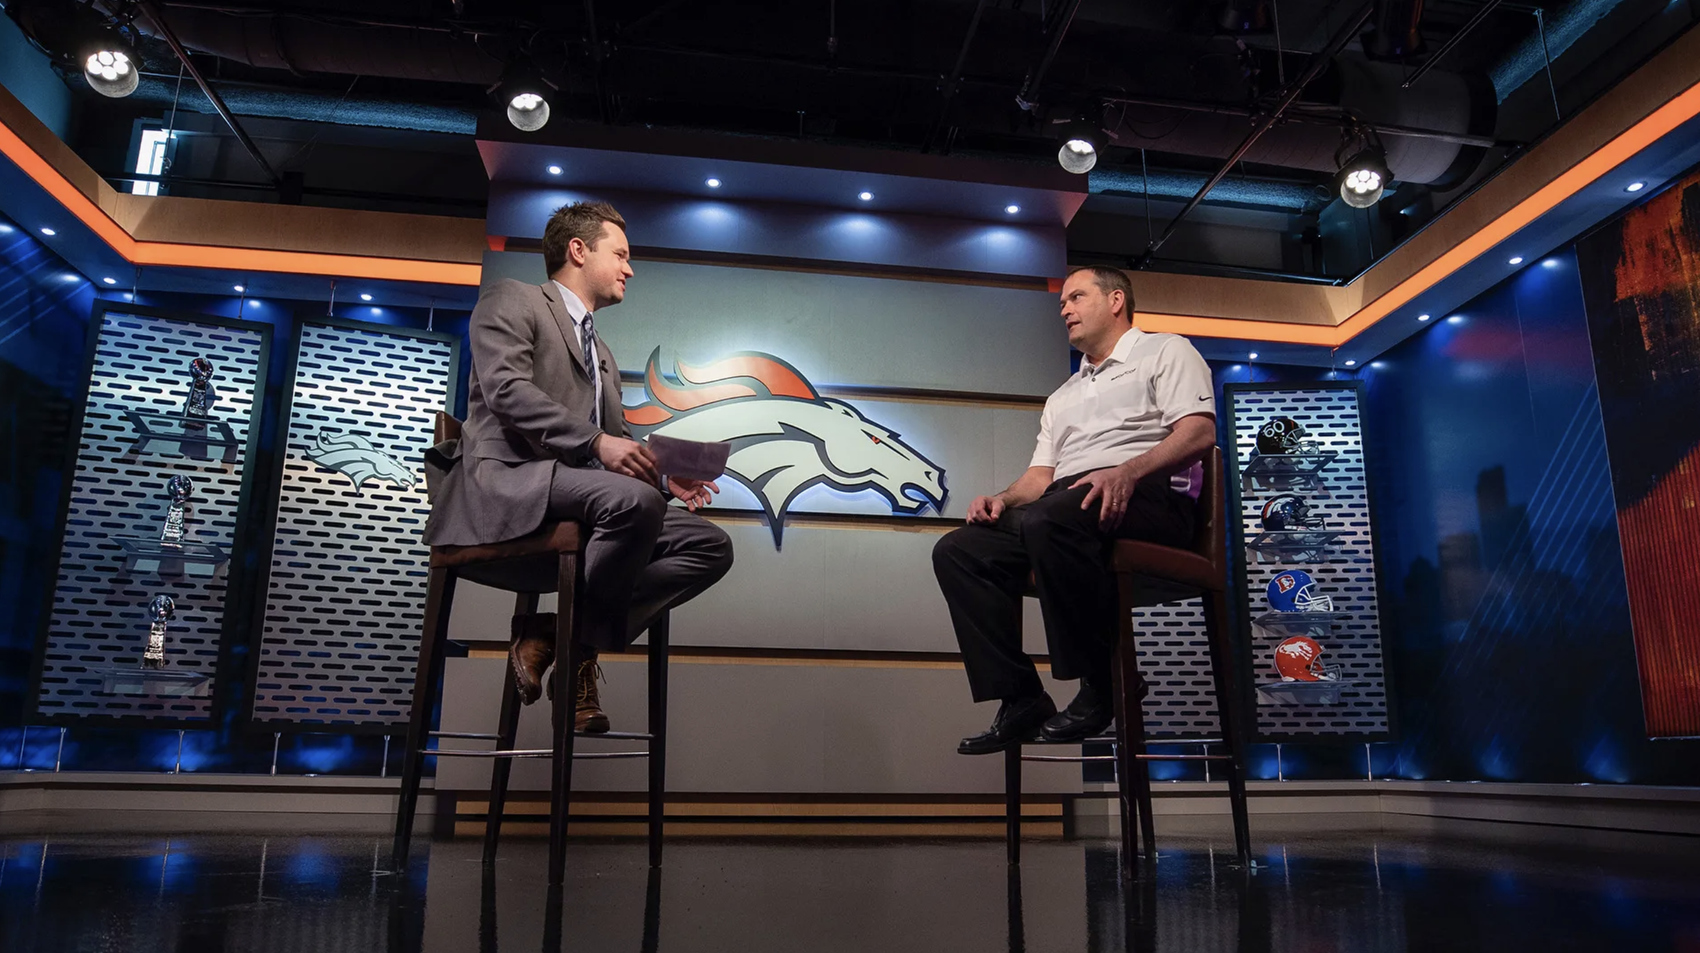 NCS_NFL-Denver-Broncos-TV-Studio_0005